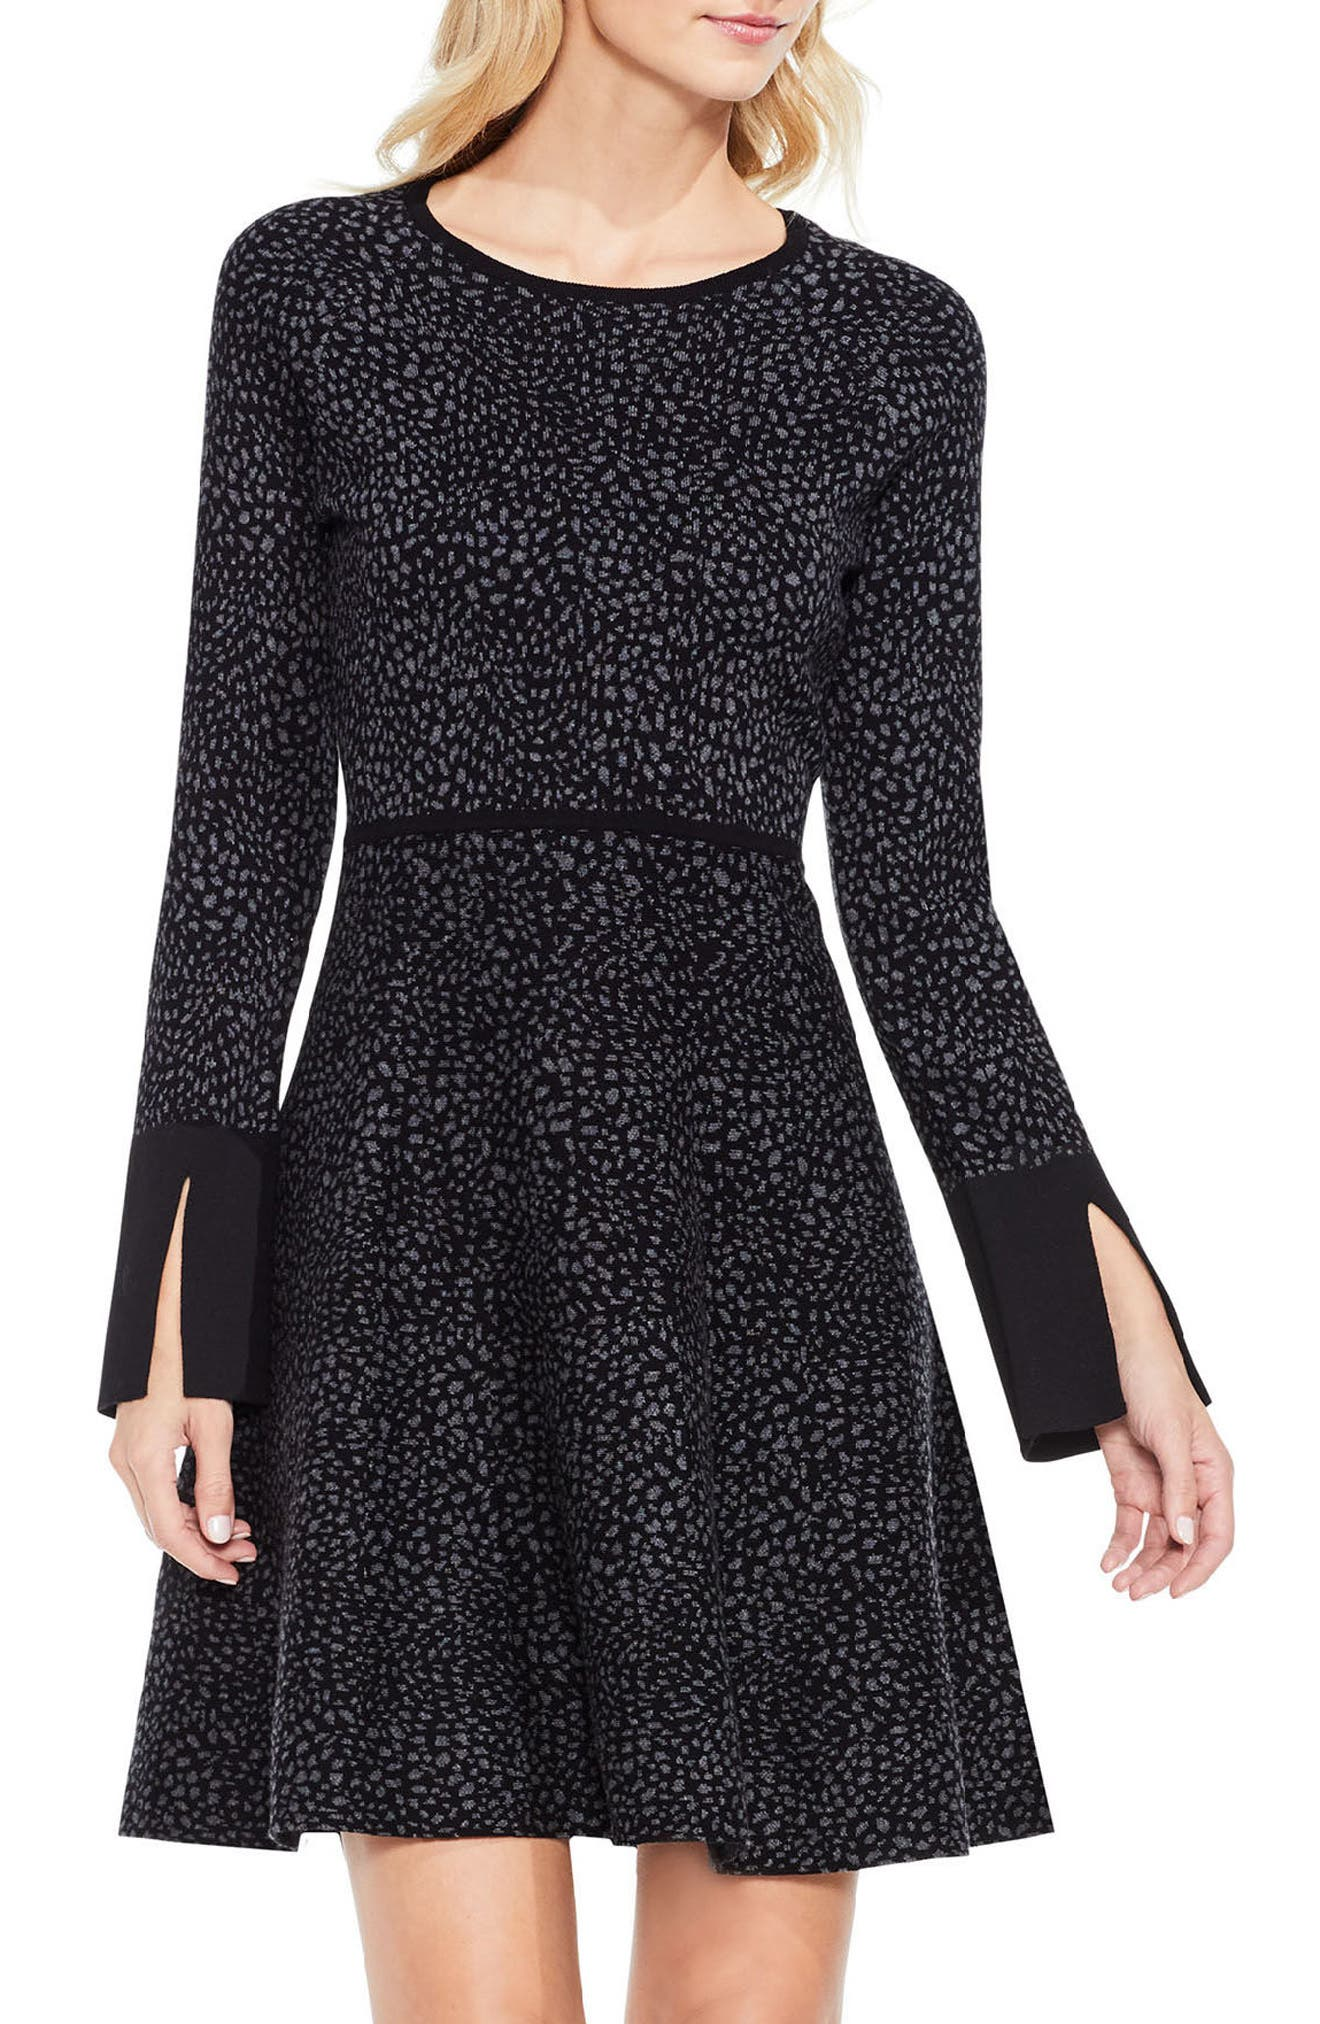 Jacquard Fit & Flare Dress,                             Main thumbnail 1, color,                             Rich Black